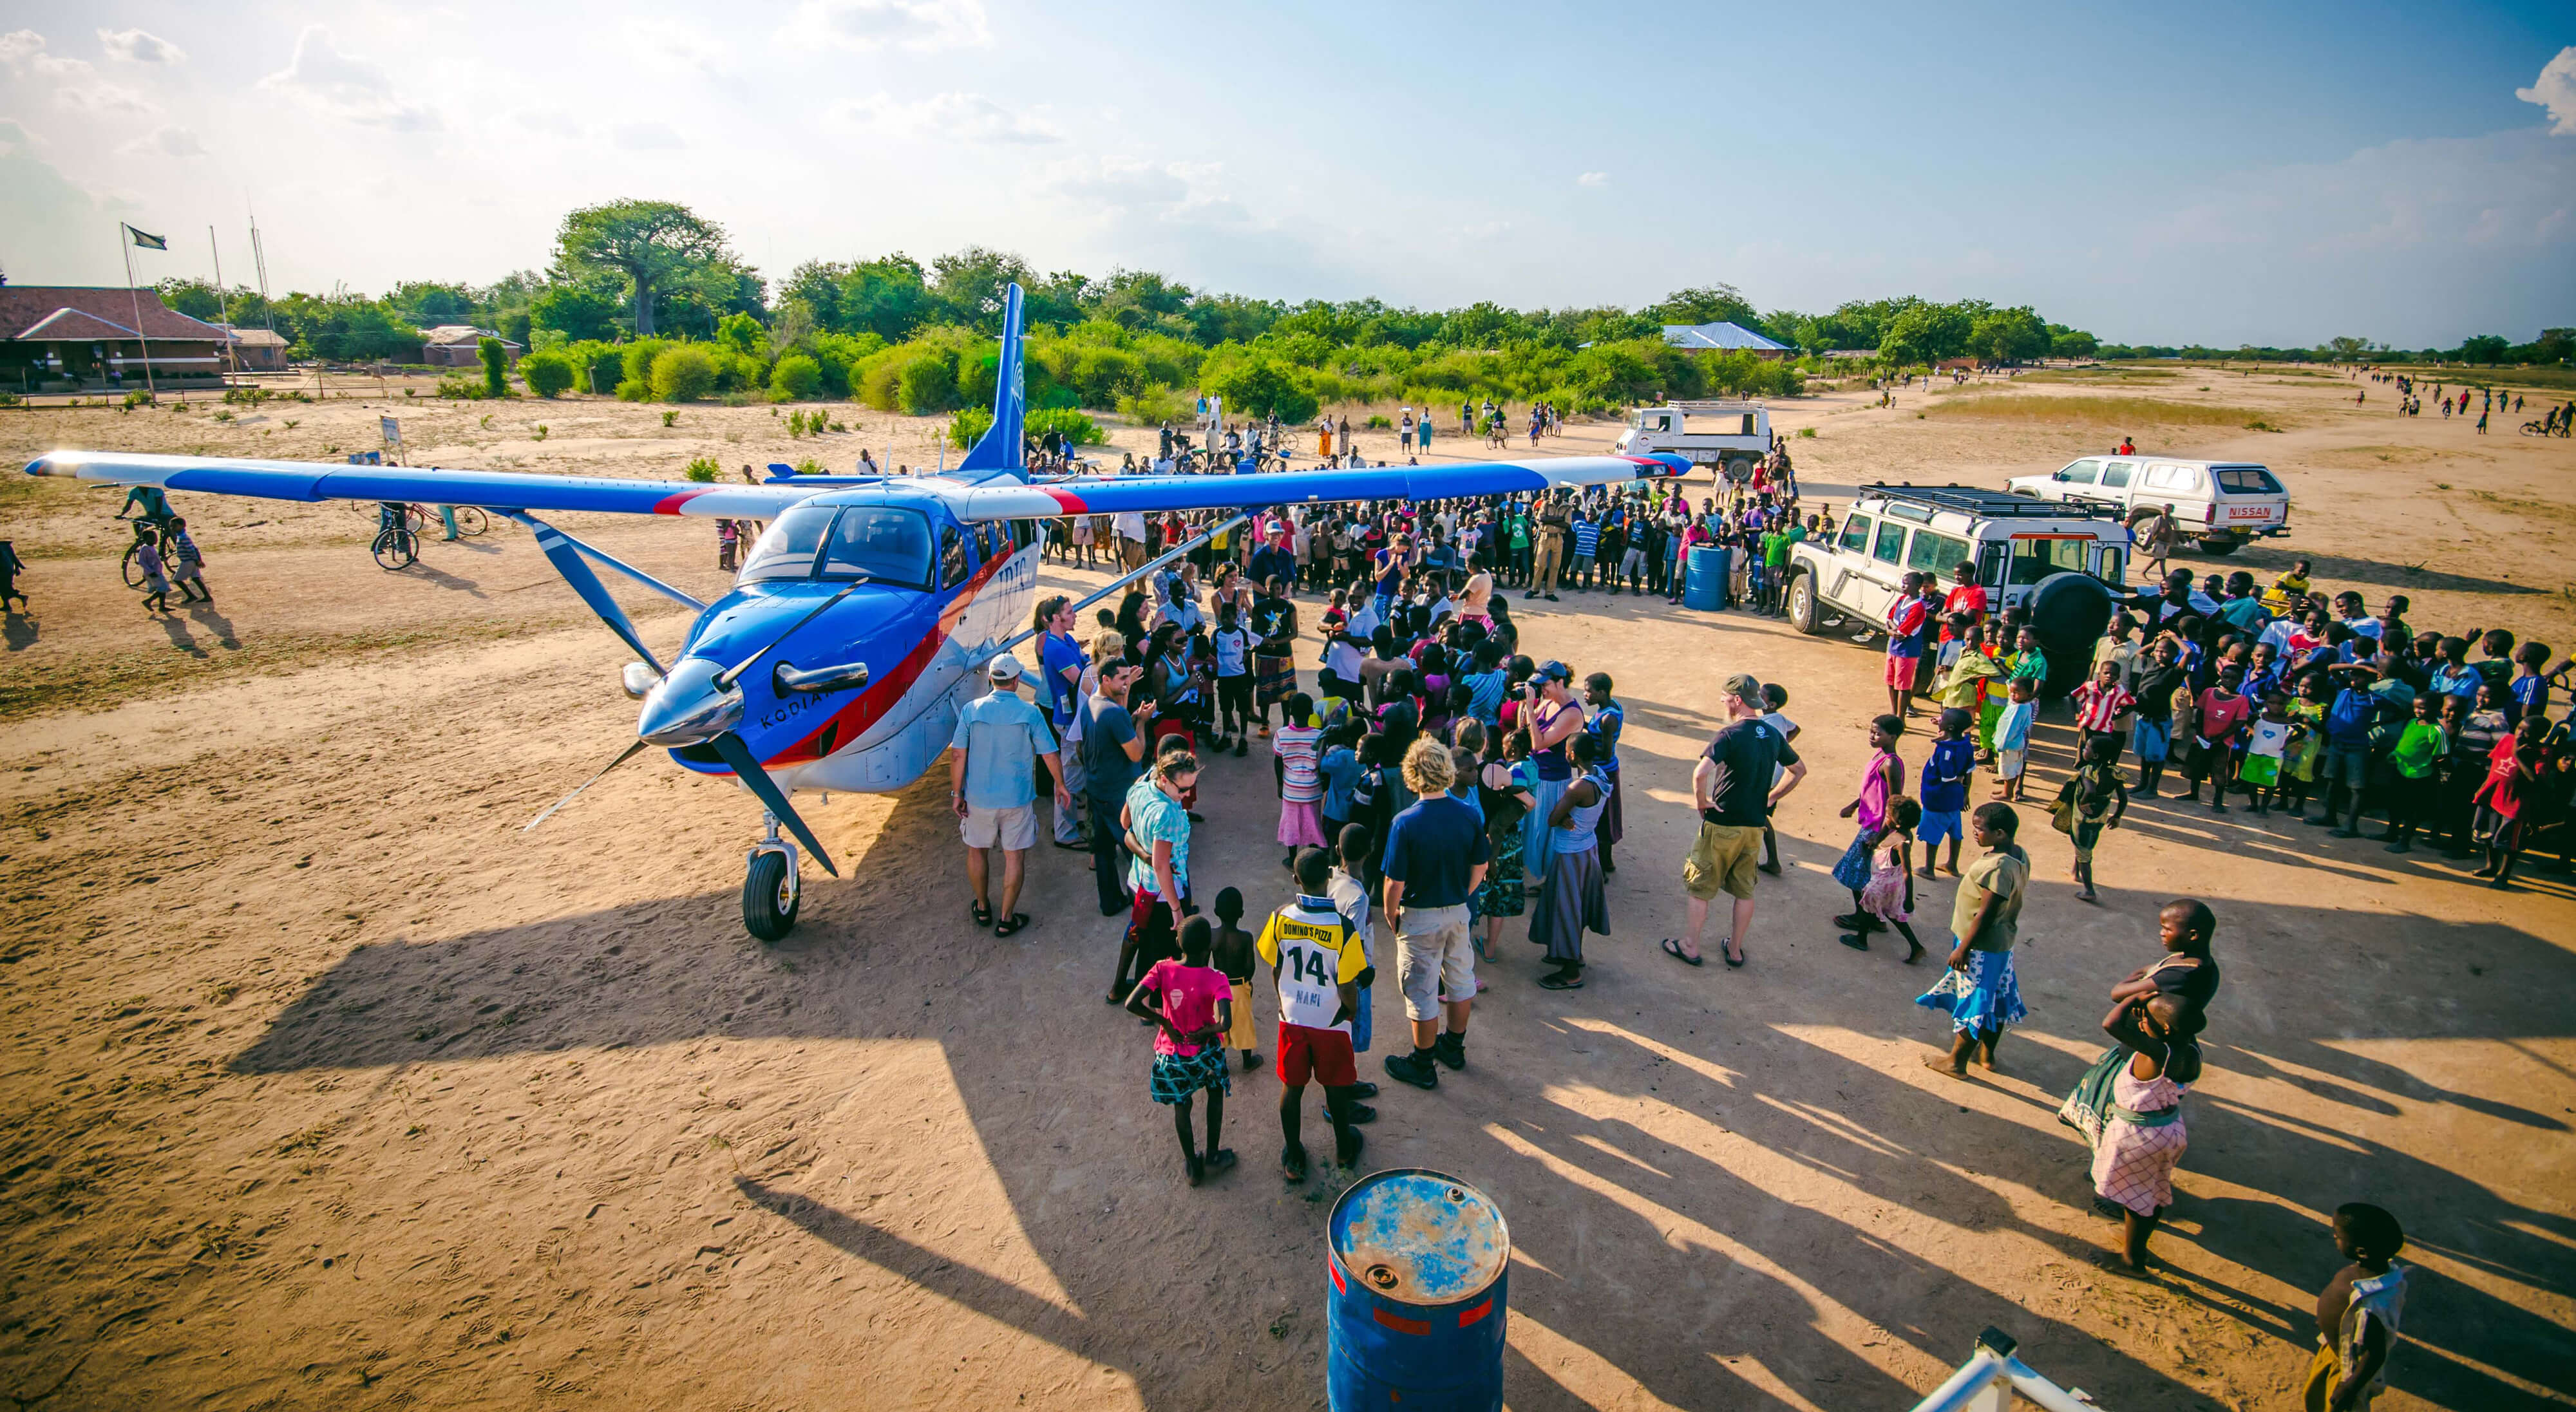 After Hours - Iris Global | Missionary NGO to Mozambique